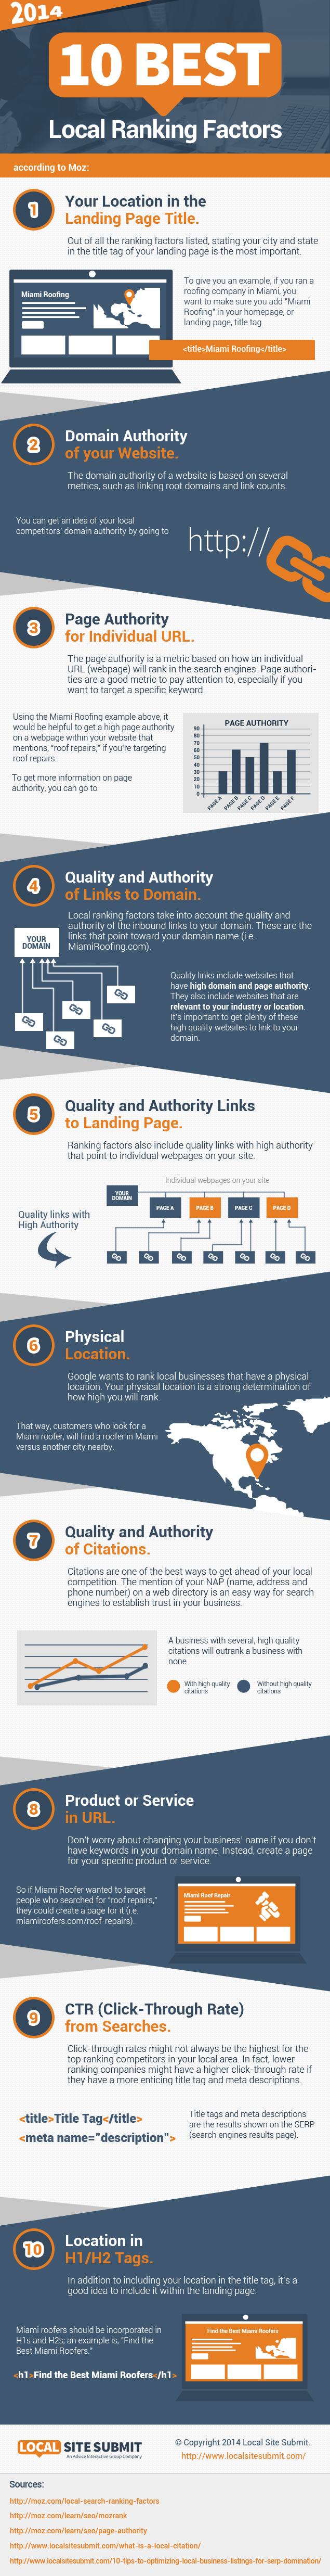 local seo ranking factors 2014